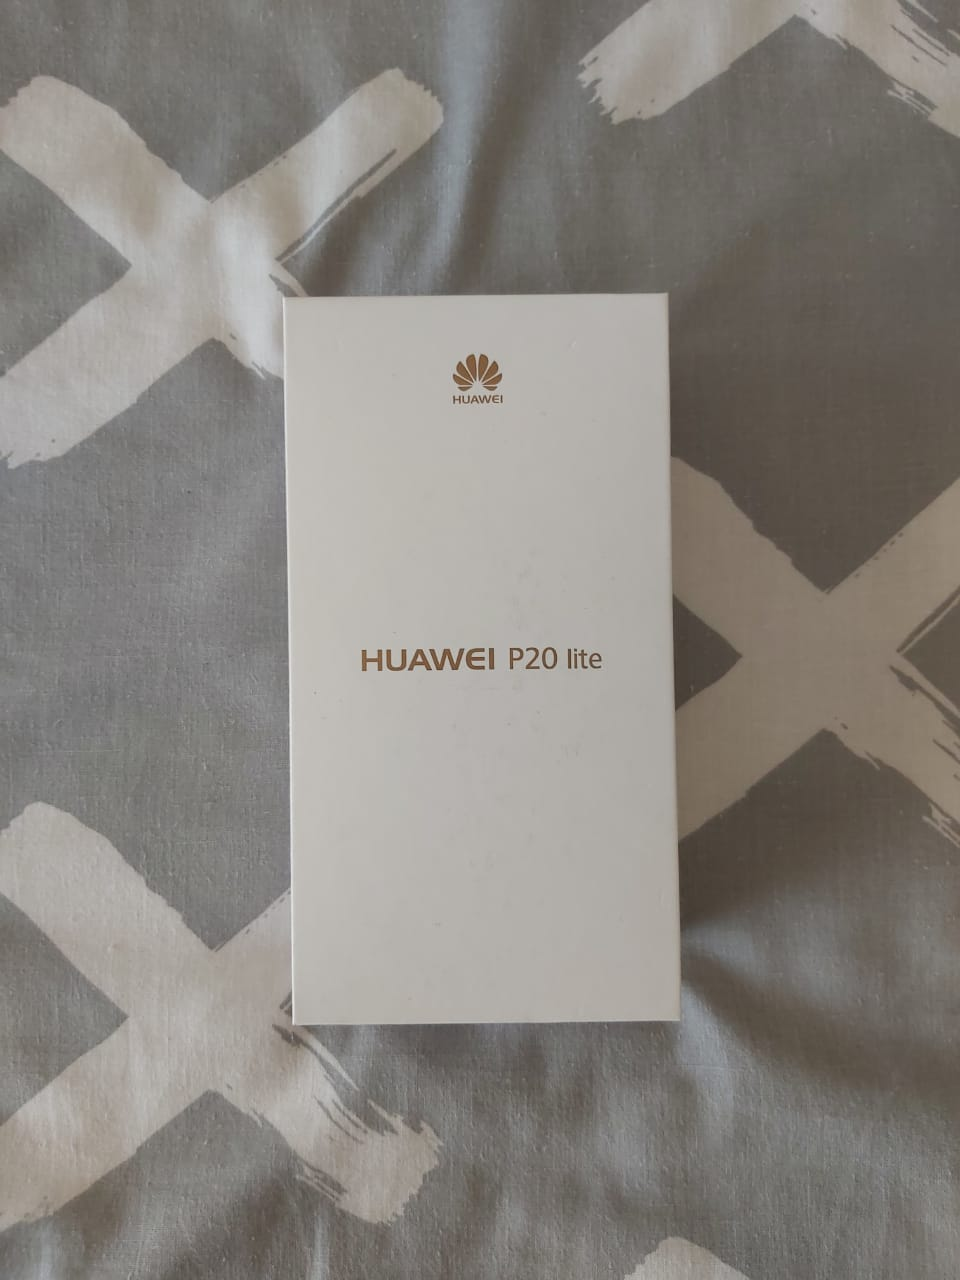 Hauwei P20 lite (like new condition) for sale